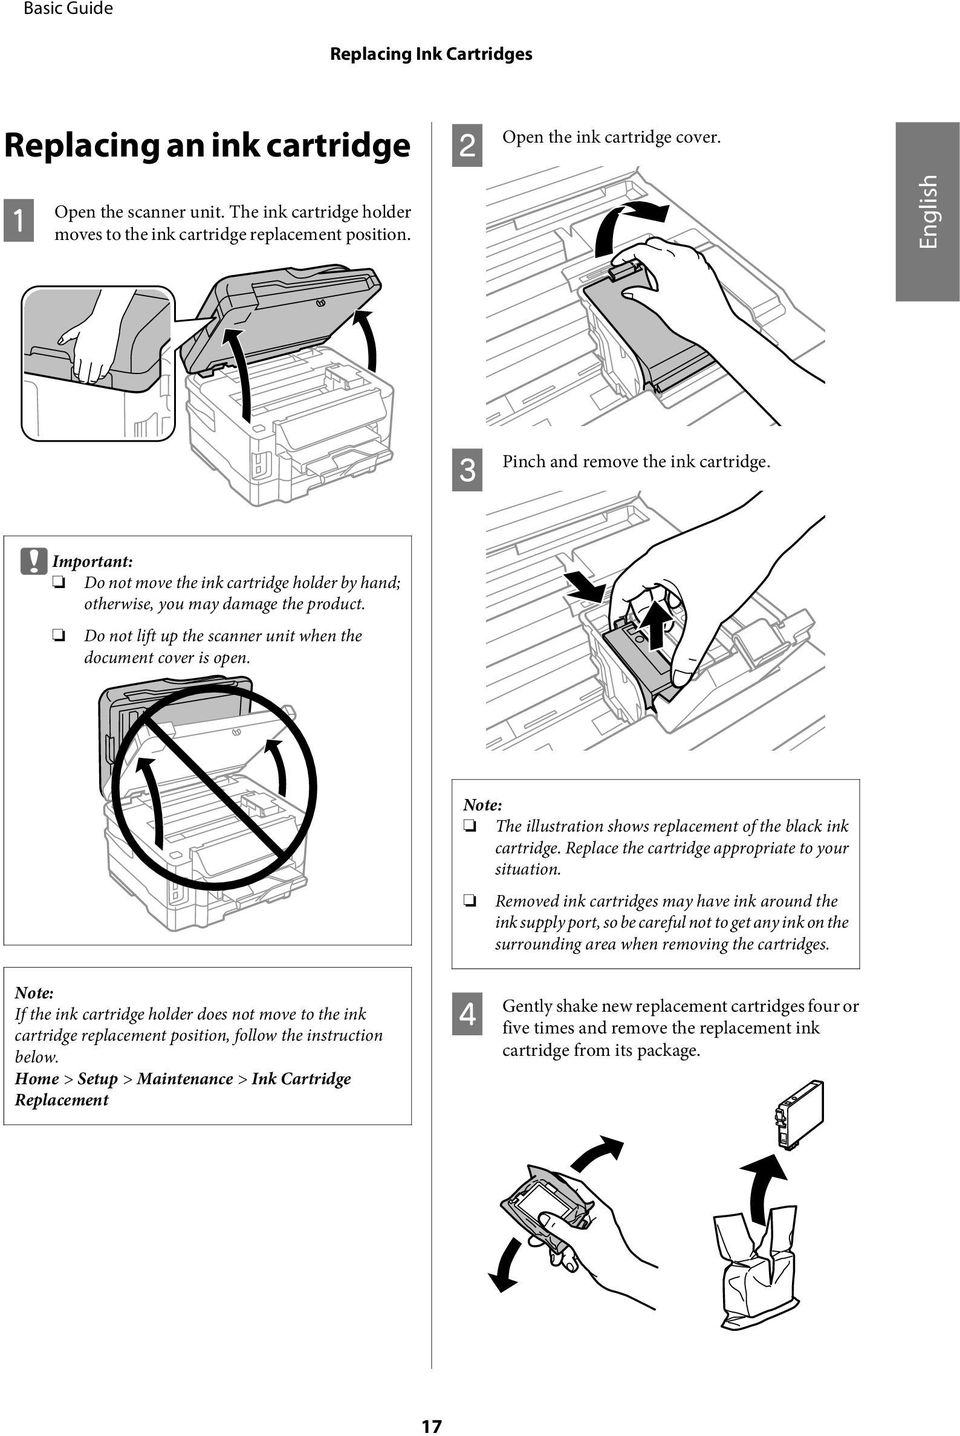 o not lift up the scanner unit when the document cover is open. Note: The illustration shows replacement of the black ink cartridge. Replace the cartridge appropriate to your situation.